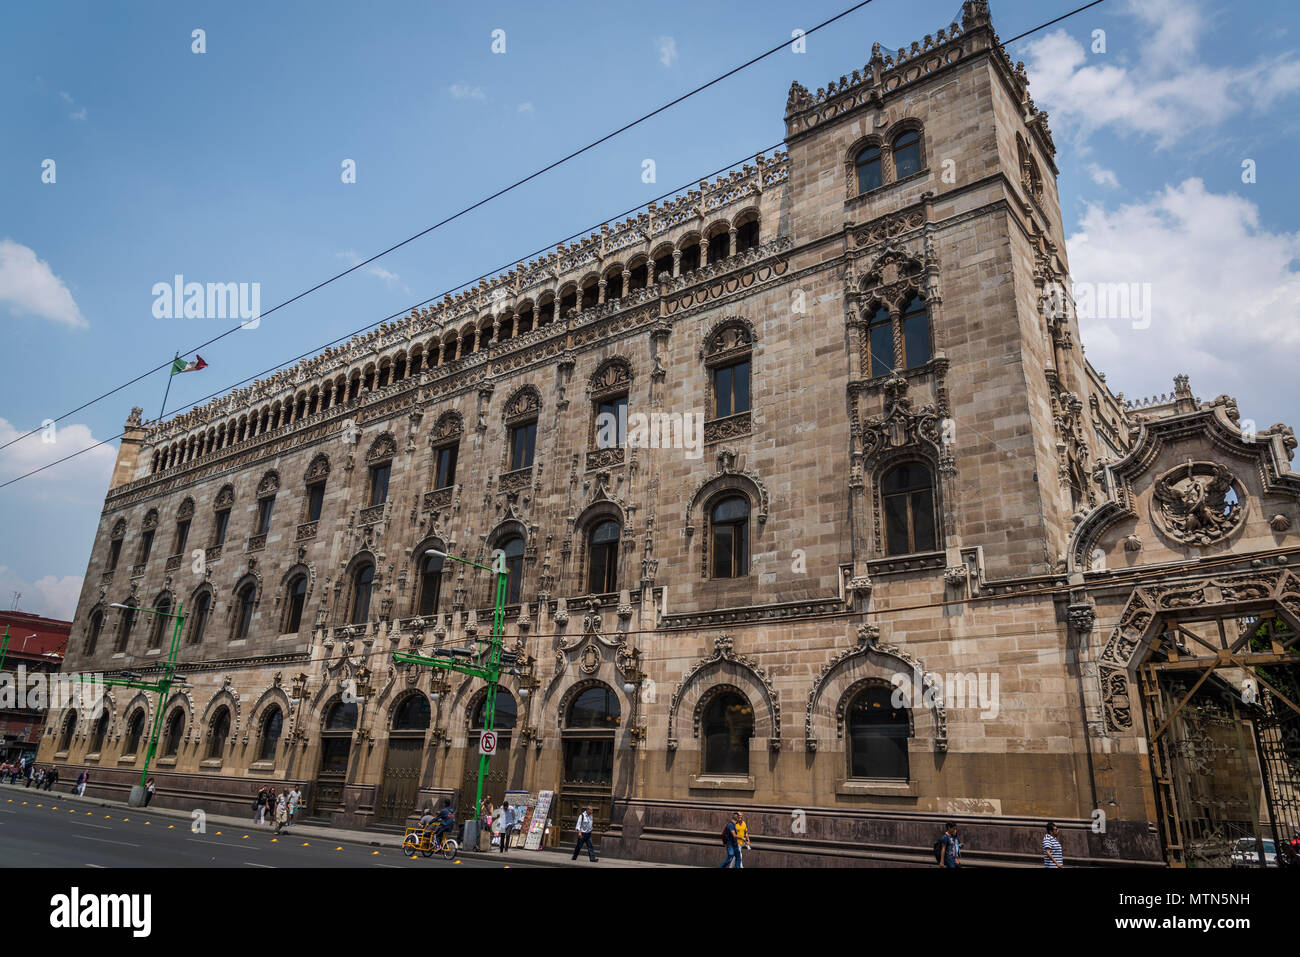 Postal Palace of Mexico City, also known as the 'Correo Mayor' or Main Post Office, Mexico City, Mexico - Stock Image